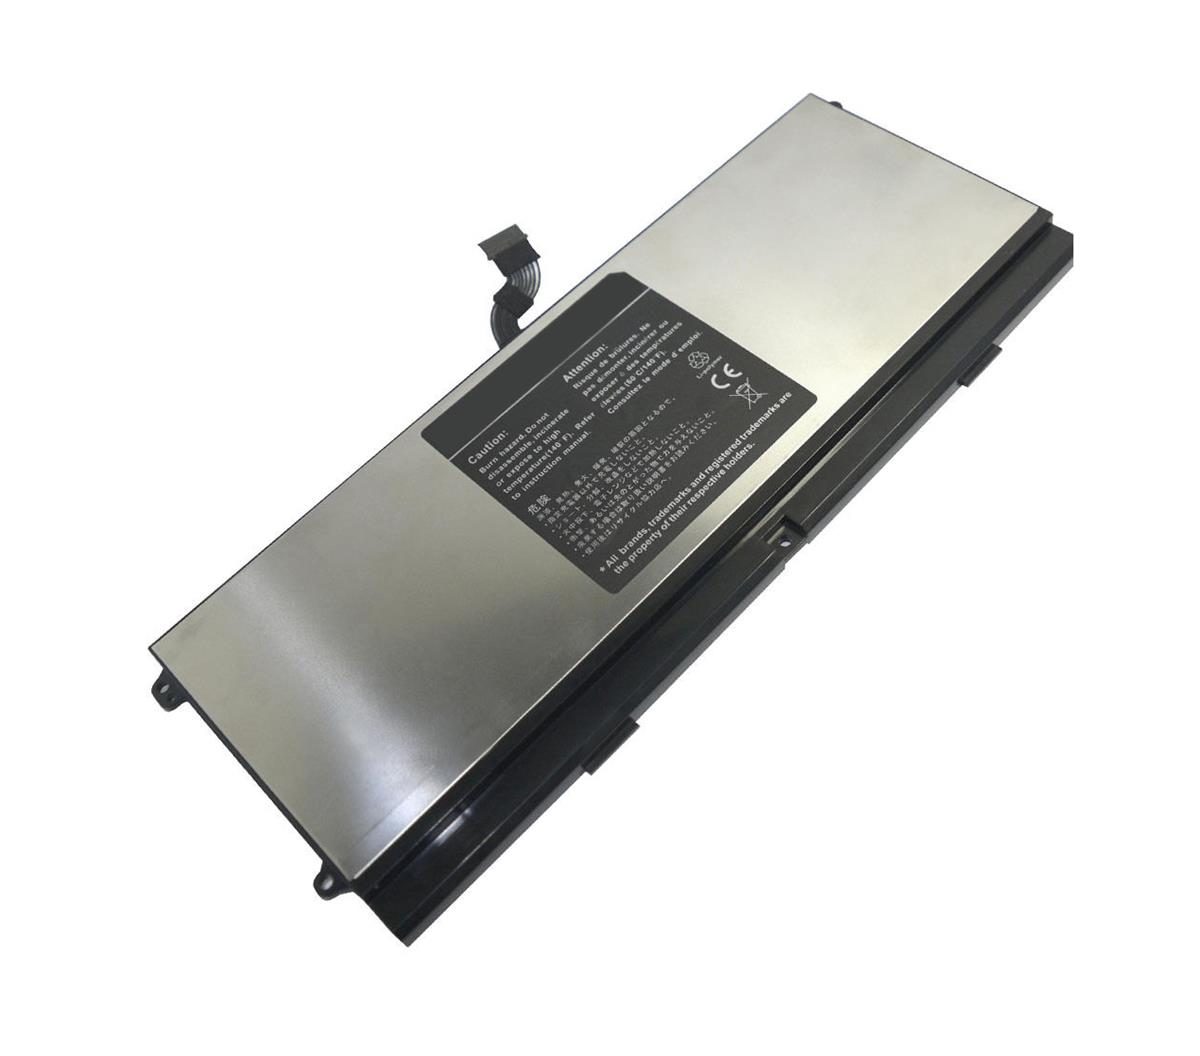 Dell 8-Cell 64WHr Li-Ion Battery for XPS 15z Laptop (Refurbished) Mfr P/N 75WY2